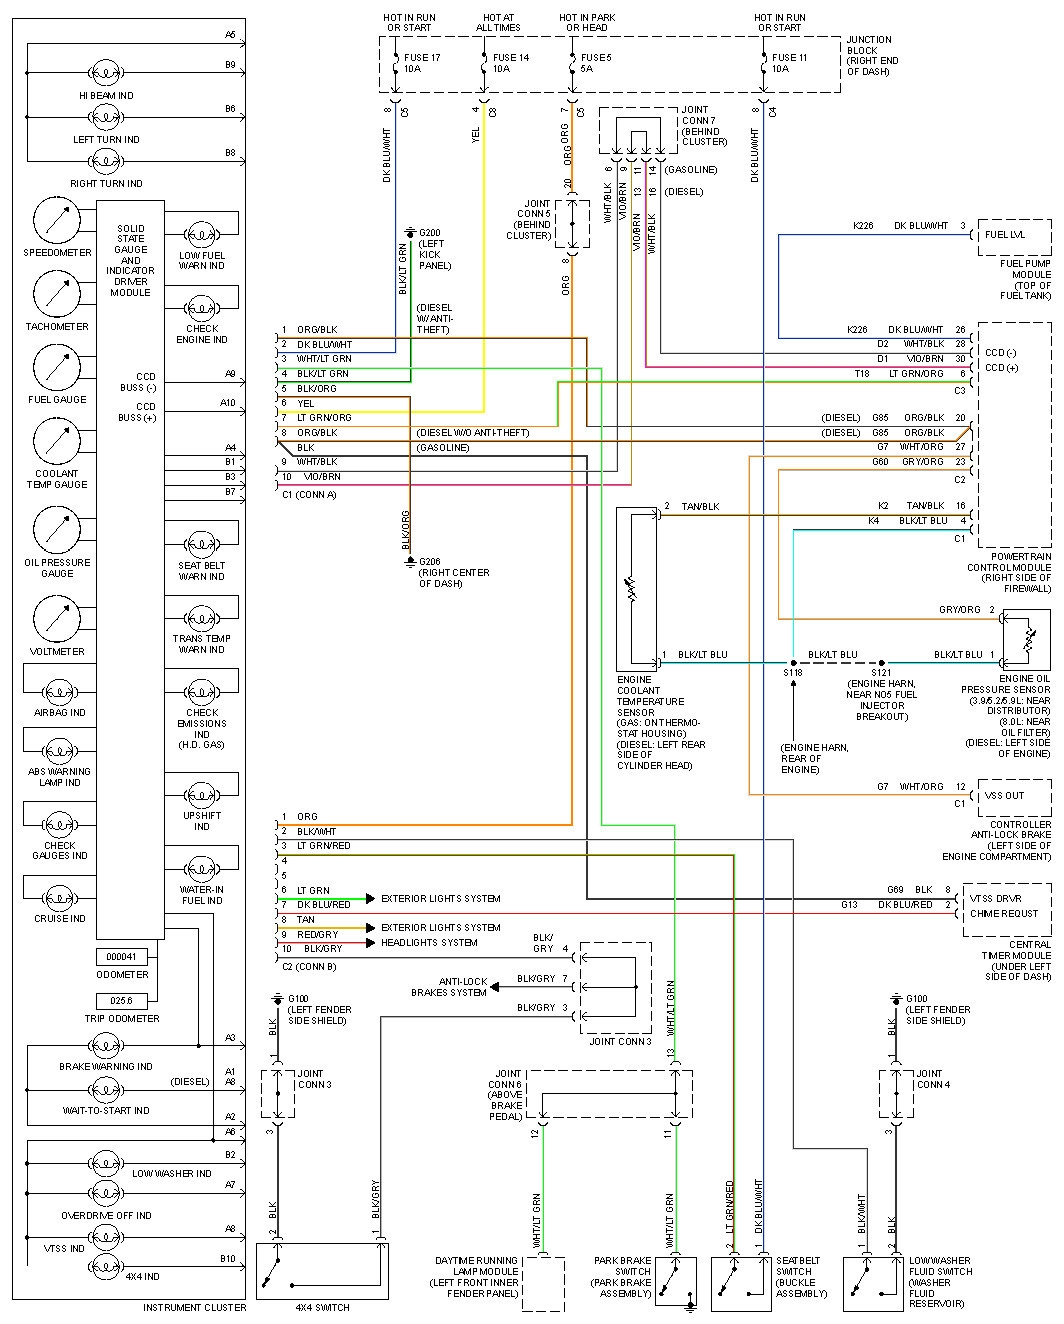 wiring diagram for 2009 dodge ram 3500 wiring diagram 2010 Dodge Ram 2500 Wiring Diagram